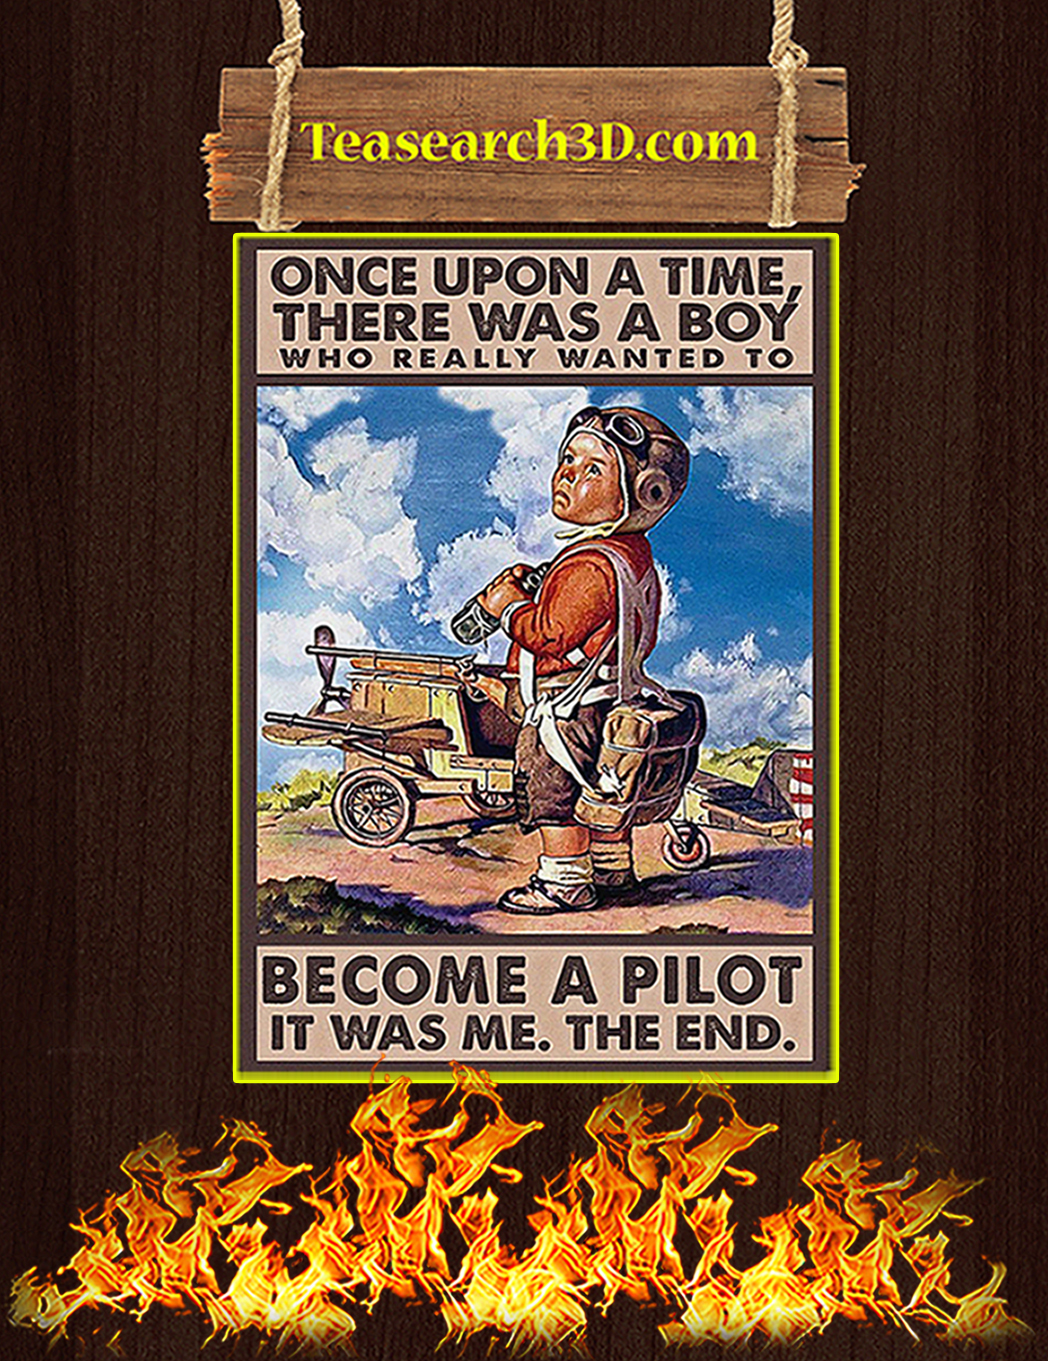 Once upon a time there was a boy who really wanted to become a pilot poster A1